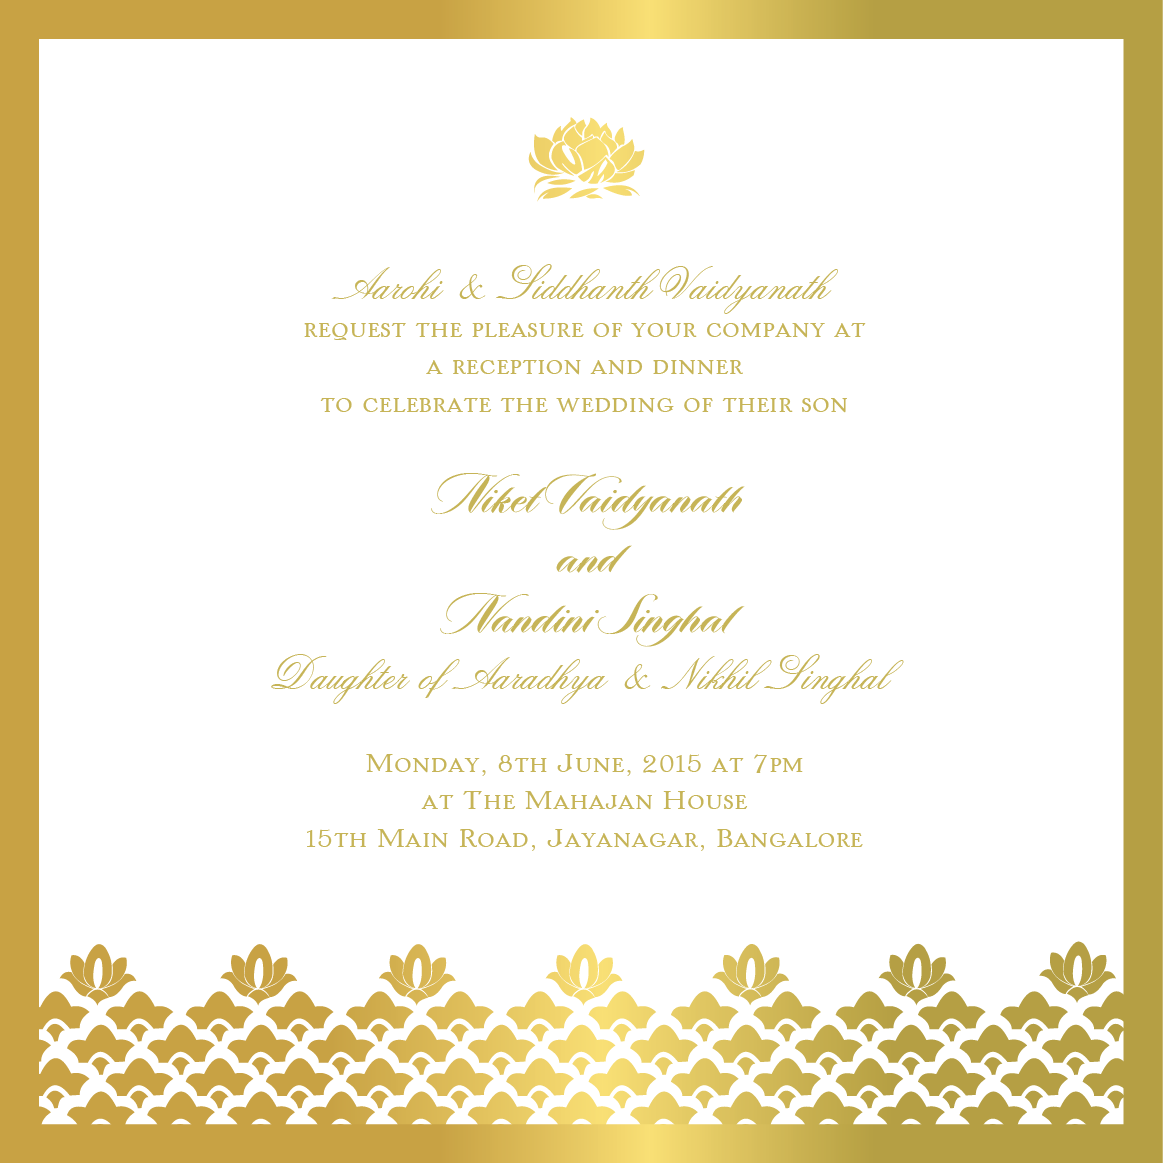 Elegant gold border and motifs on Indian reception ...